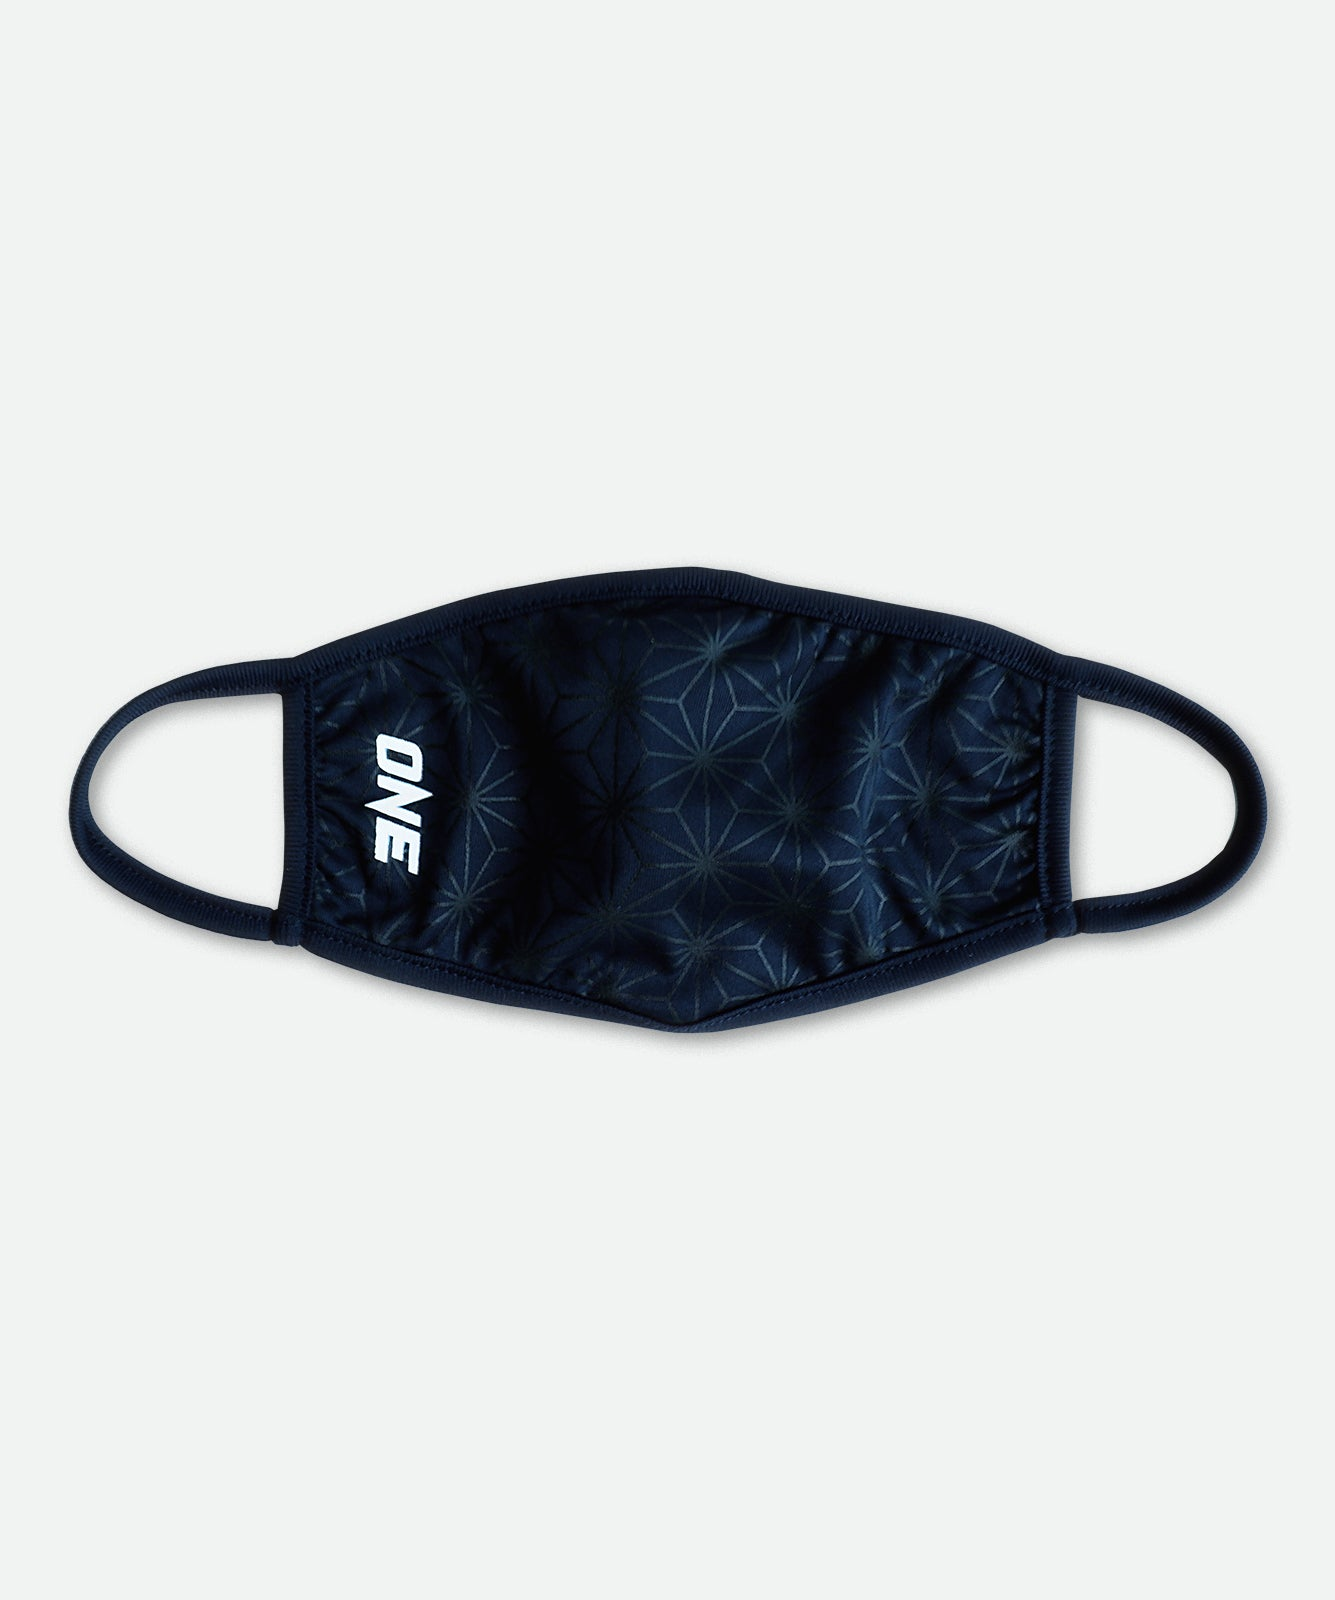 ONE Face Mask (Navy Geometric) - ONE Championship | ONE.SHOP